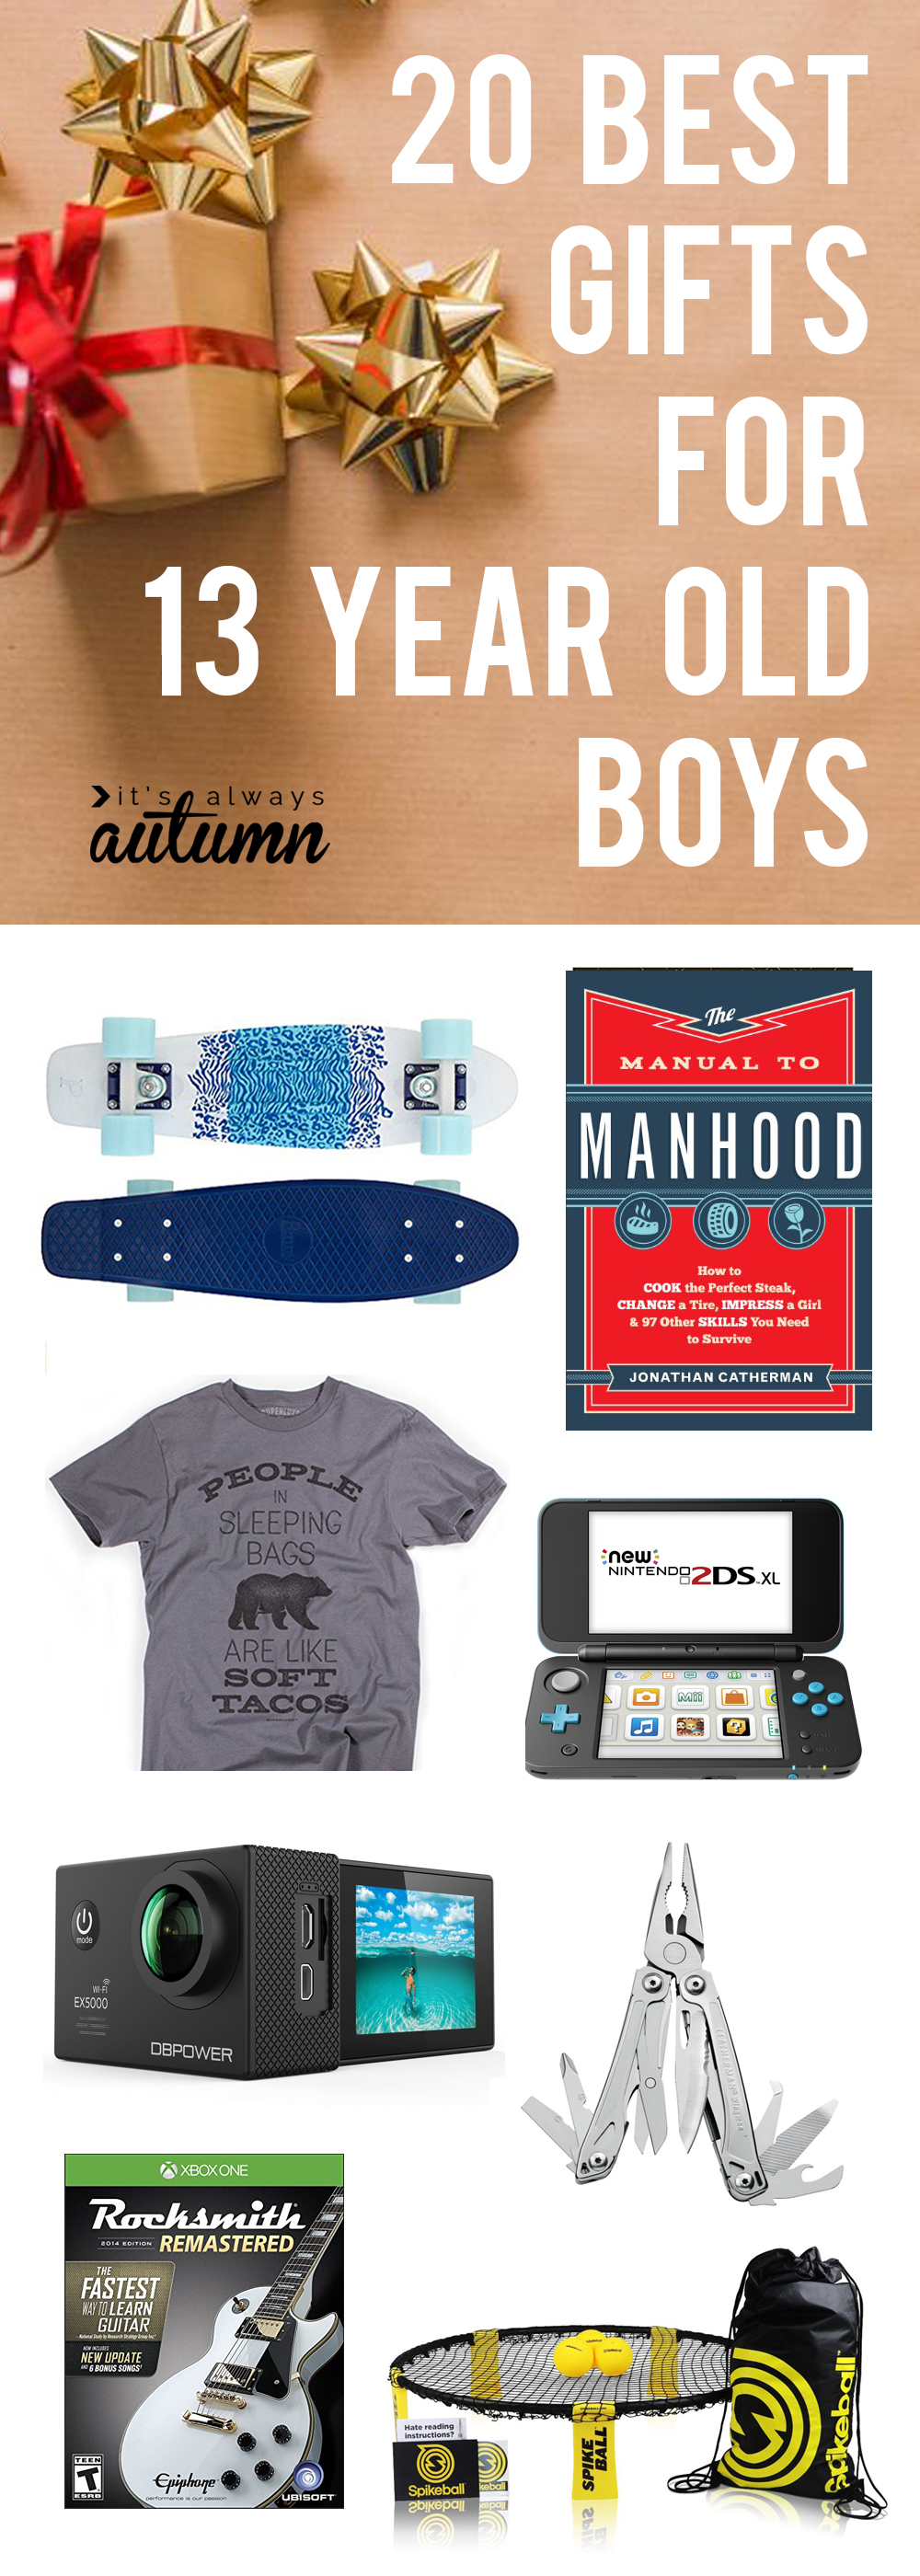 10 Beautiful Christmas Gift Ideas For 13 Year Girl best christmas gifts for 13 year old boys its always autumn 27 2020